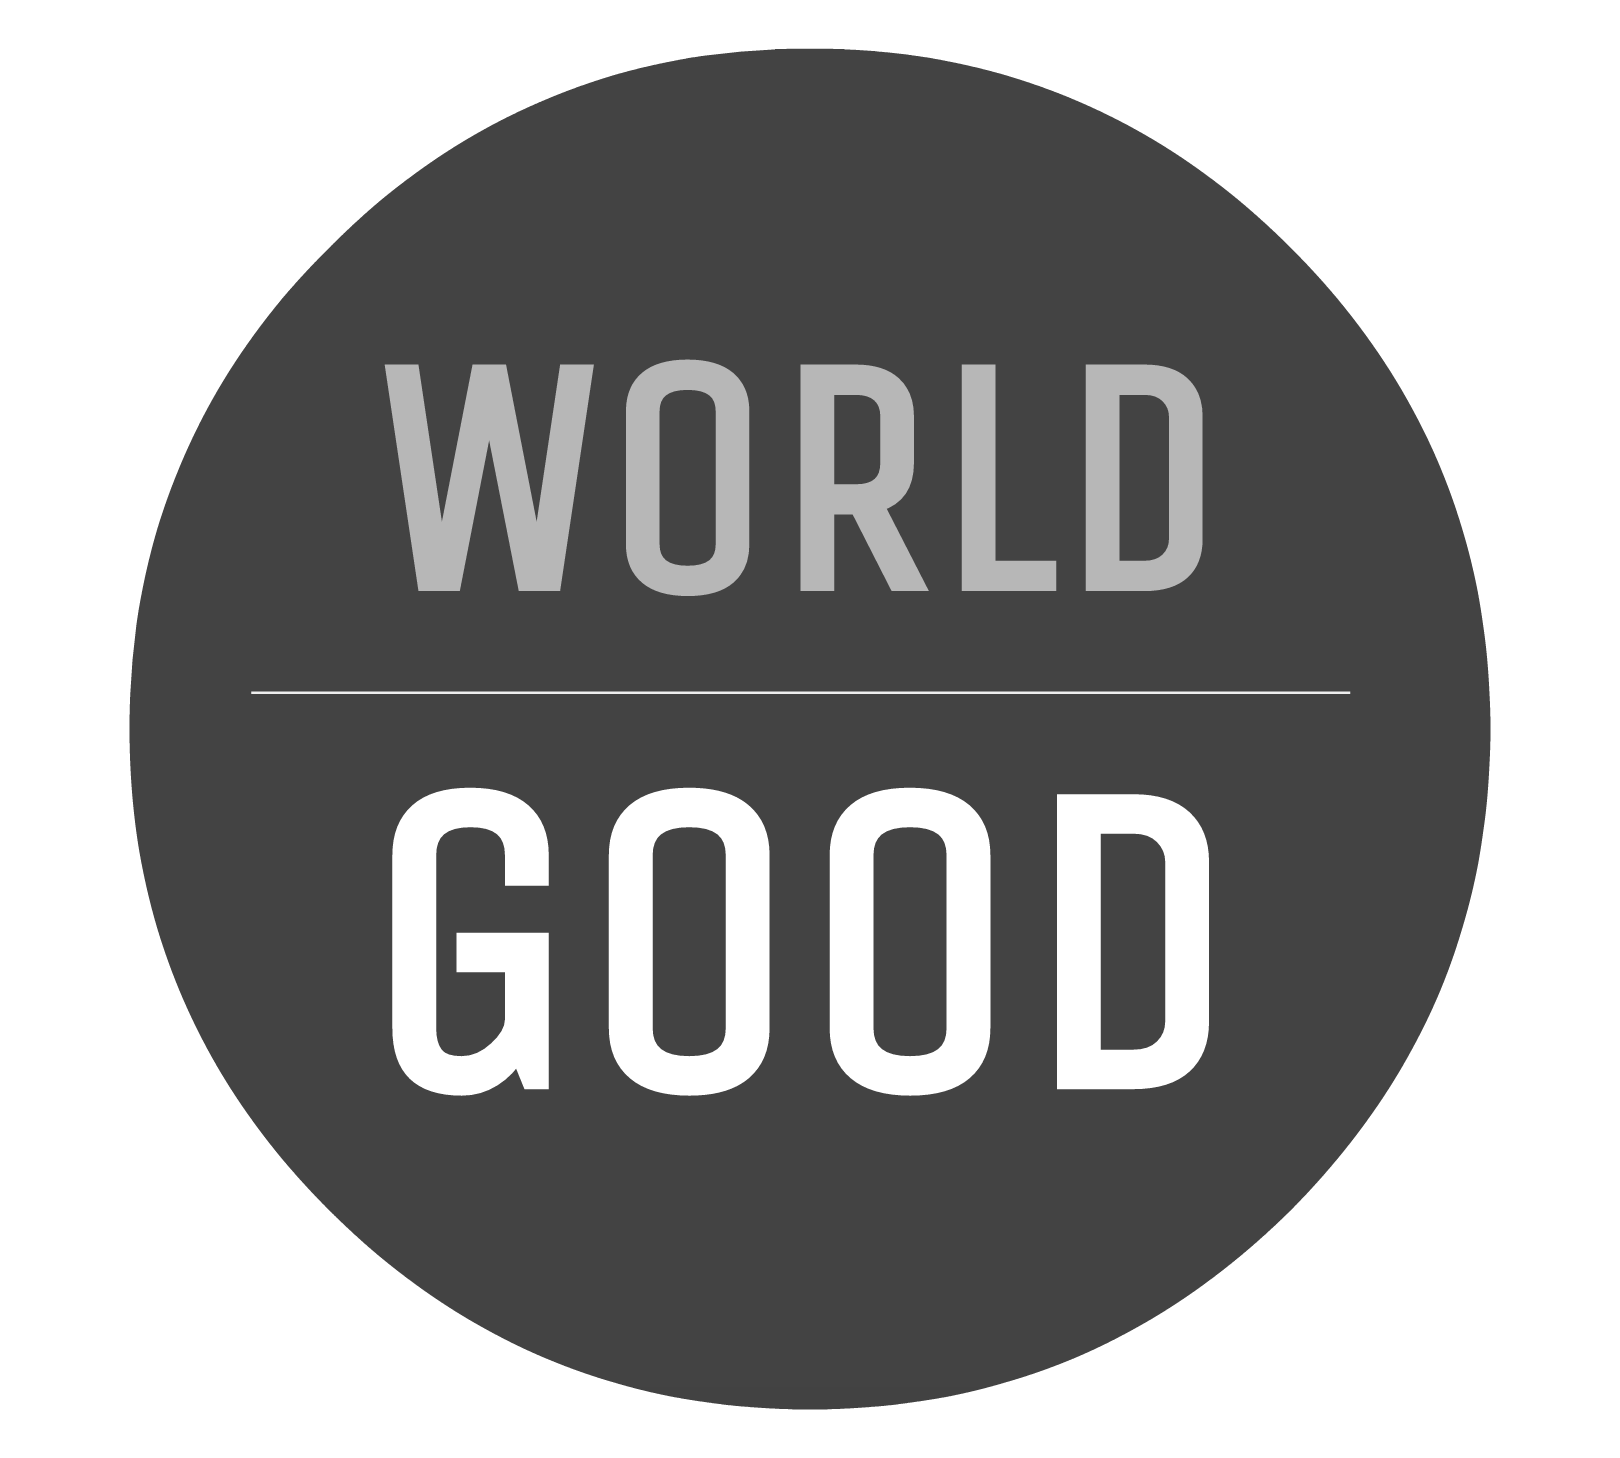 The World Good Project